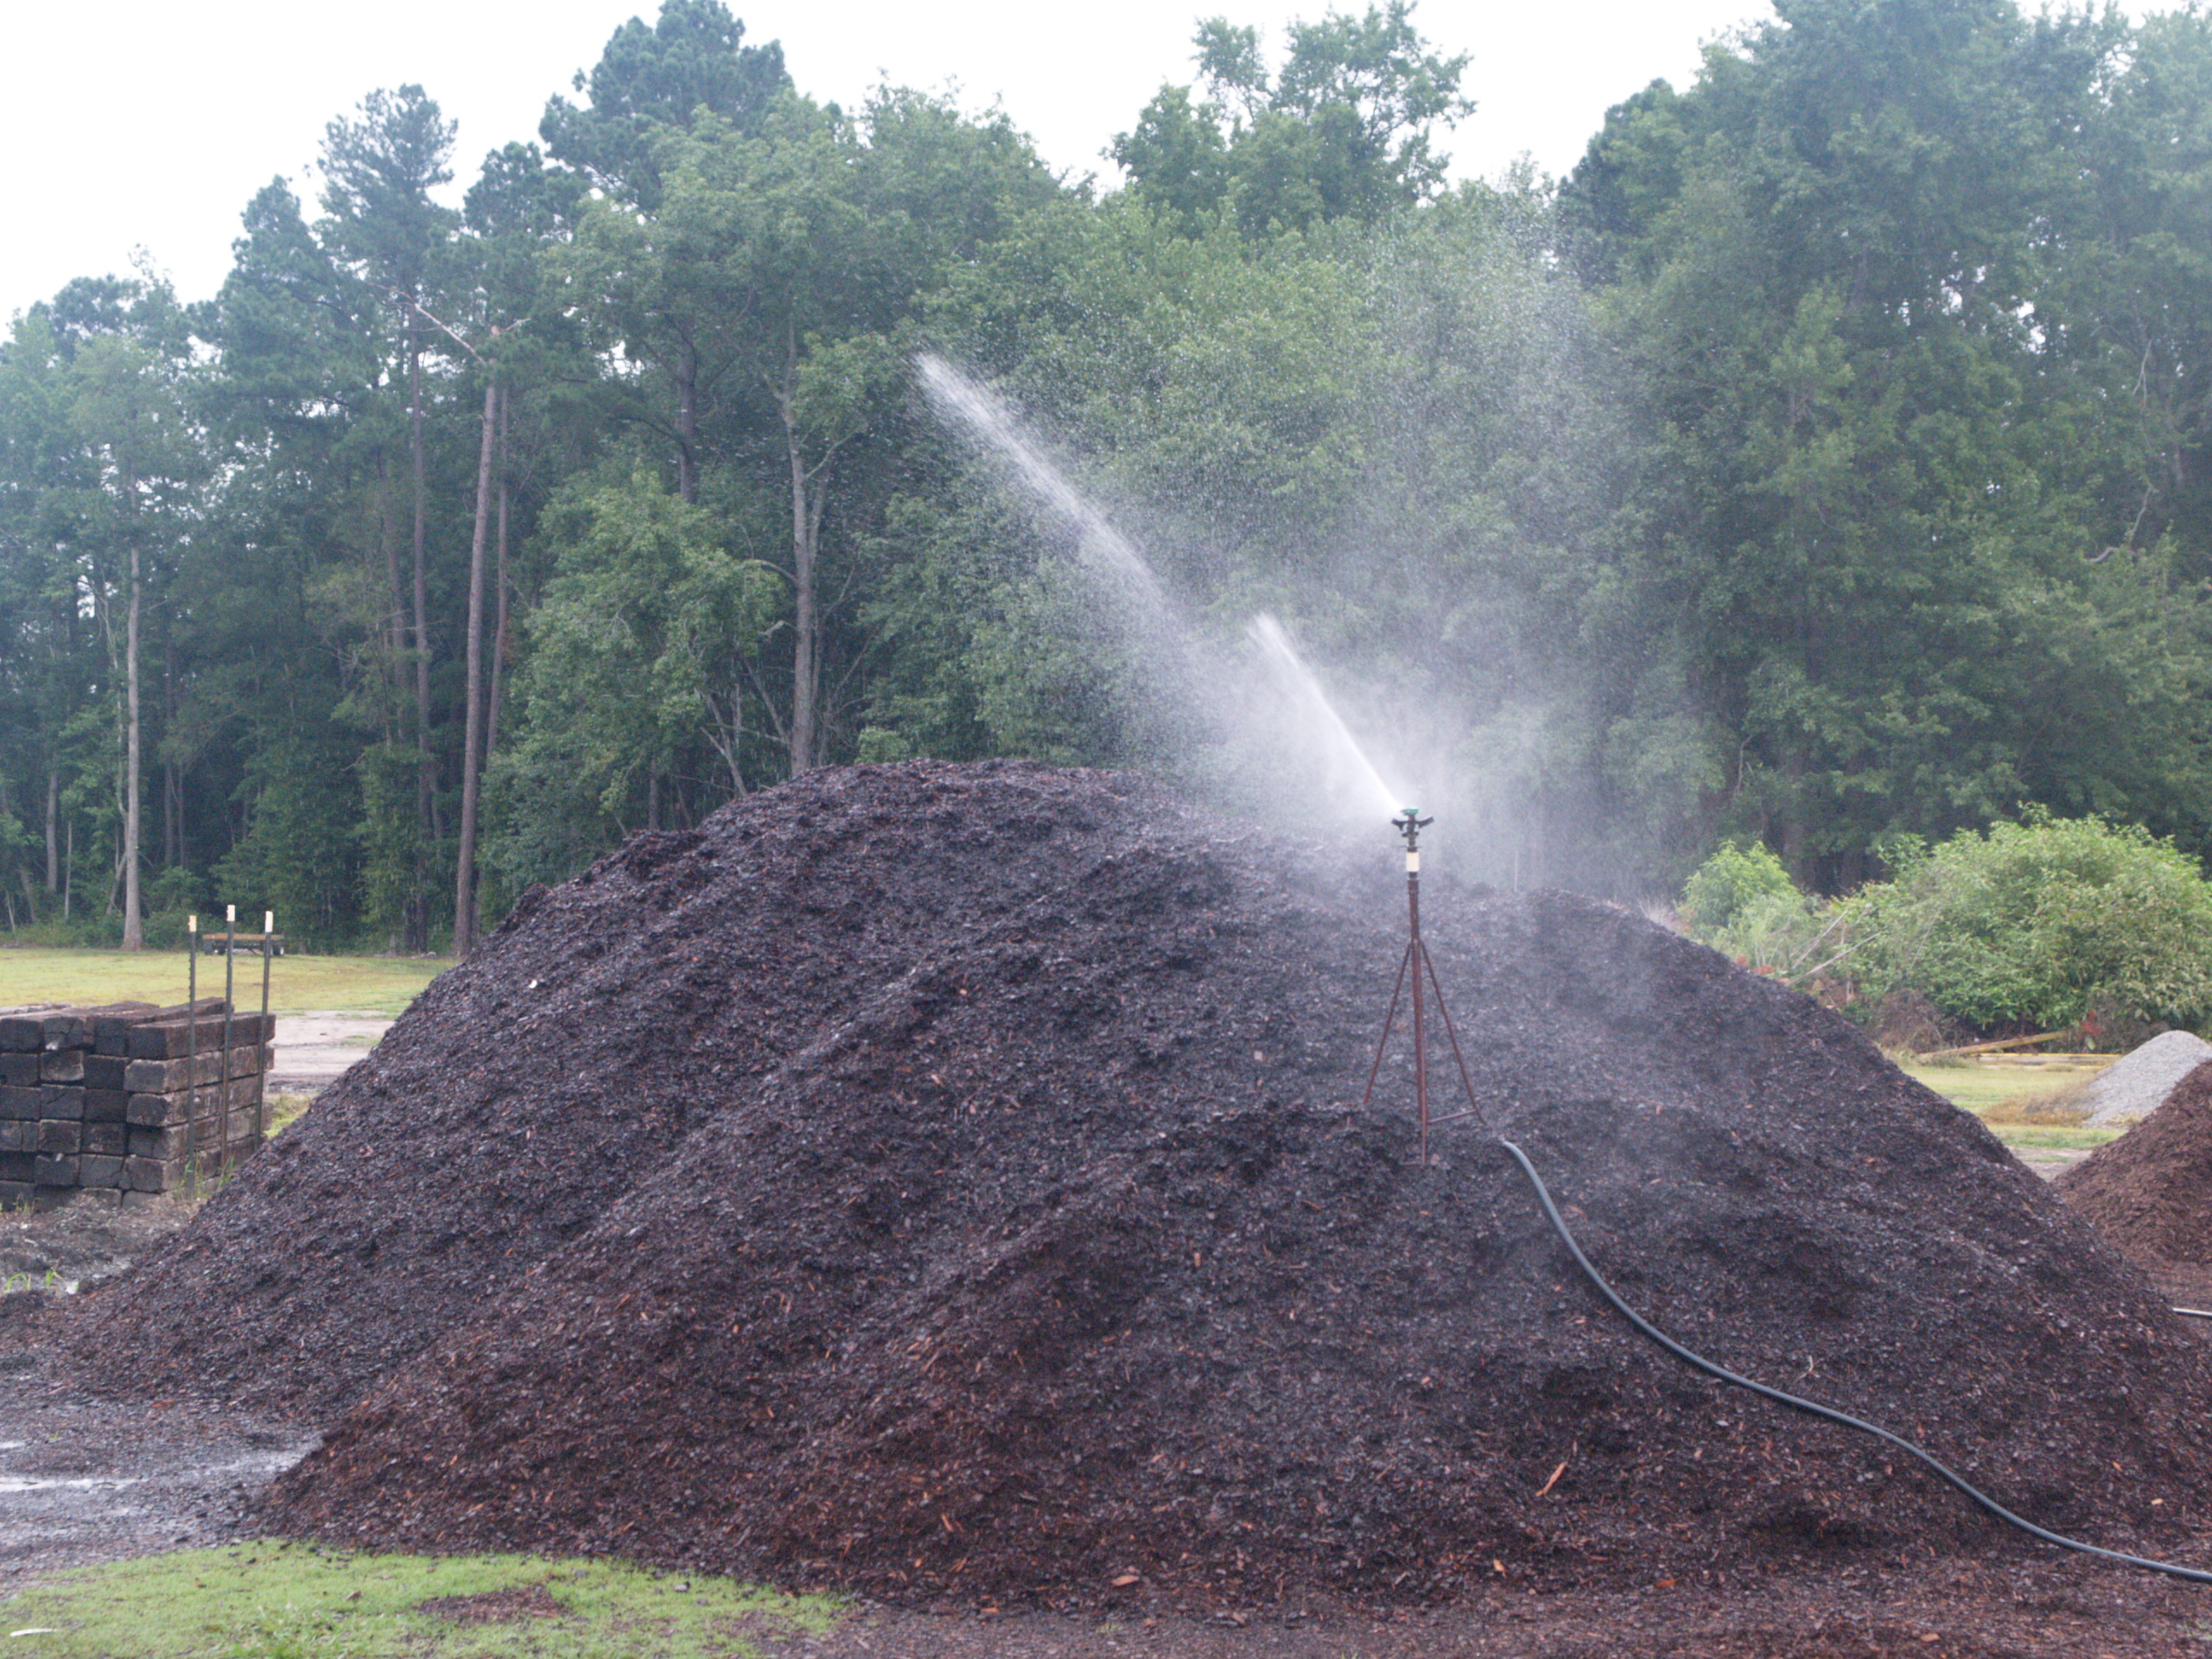 Irrigating substrate piles to keep its wetting ability consistent throughout pile